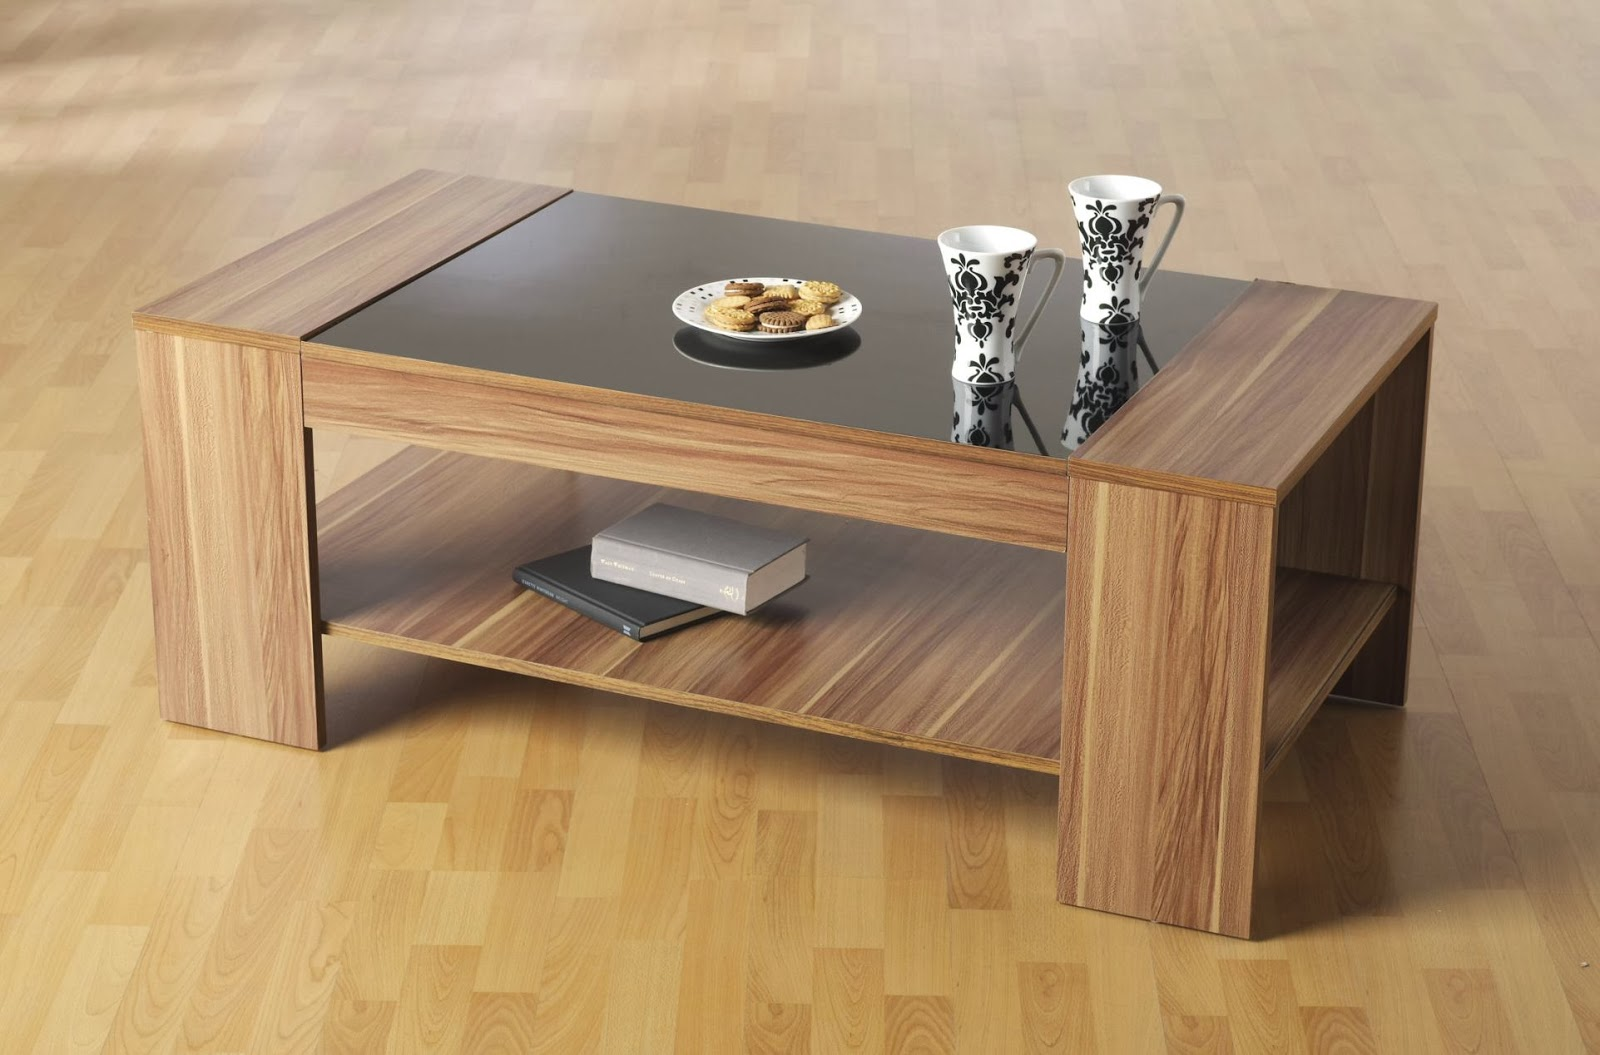 New Contemporary Coffee Tables Designs 2014 Ideas | Furniture ...